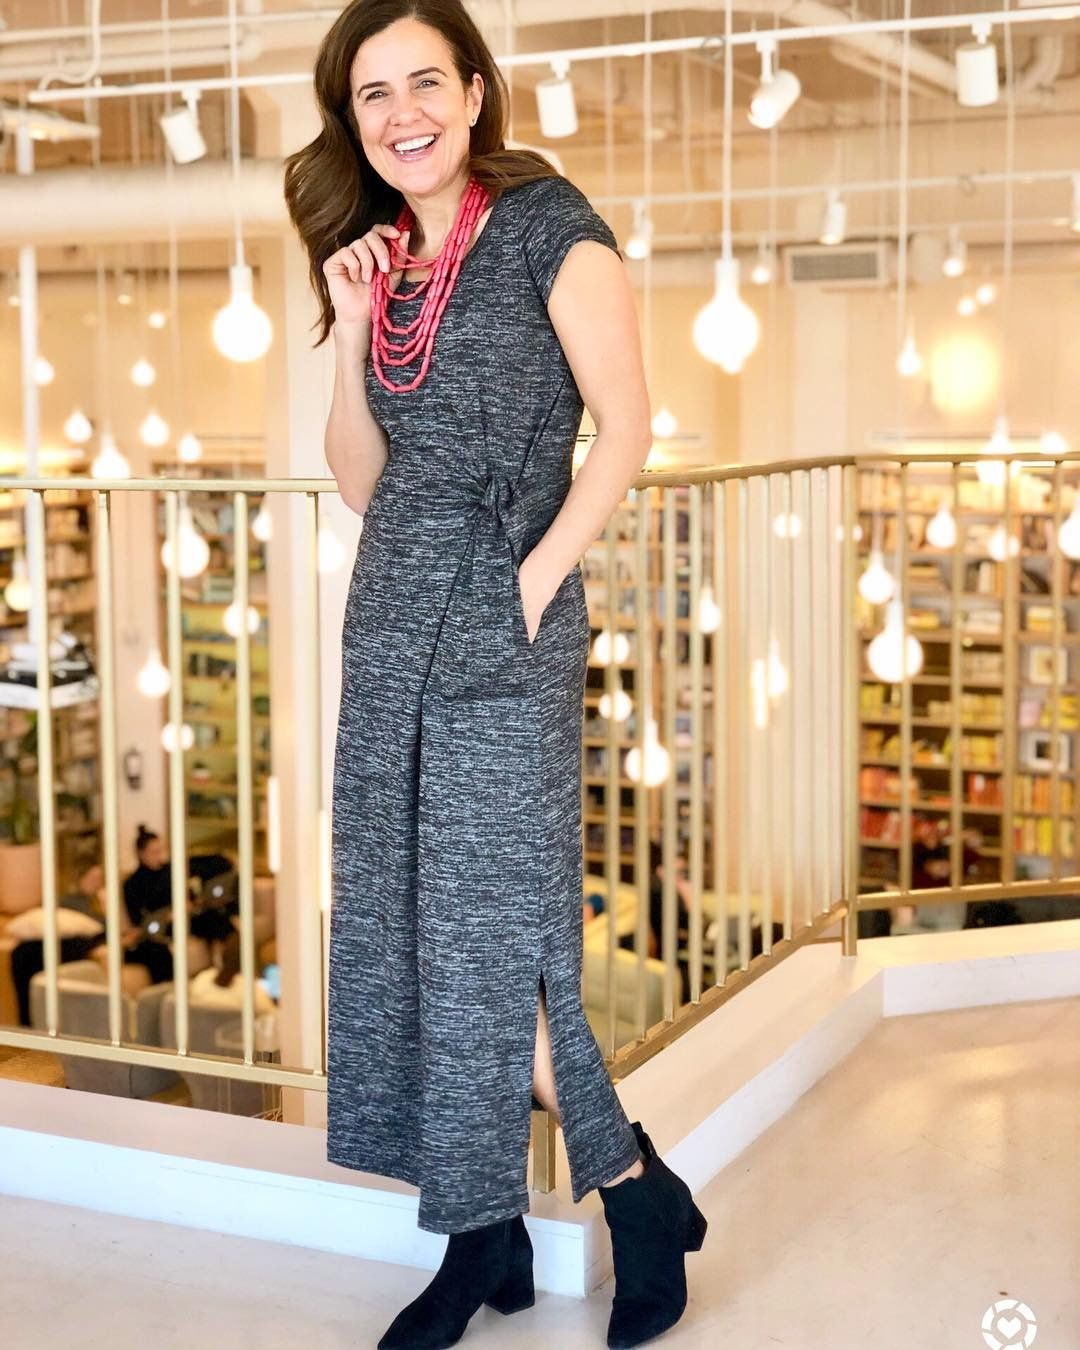 b4aec8a373c6b The Maxi Dress in 2019 | O, The Oprah Magazine Collection | Dresses ...